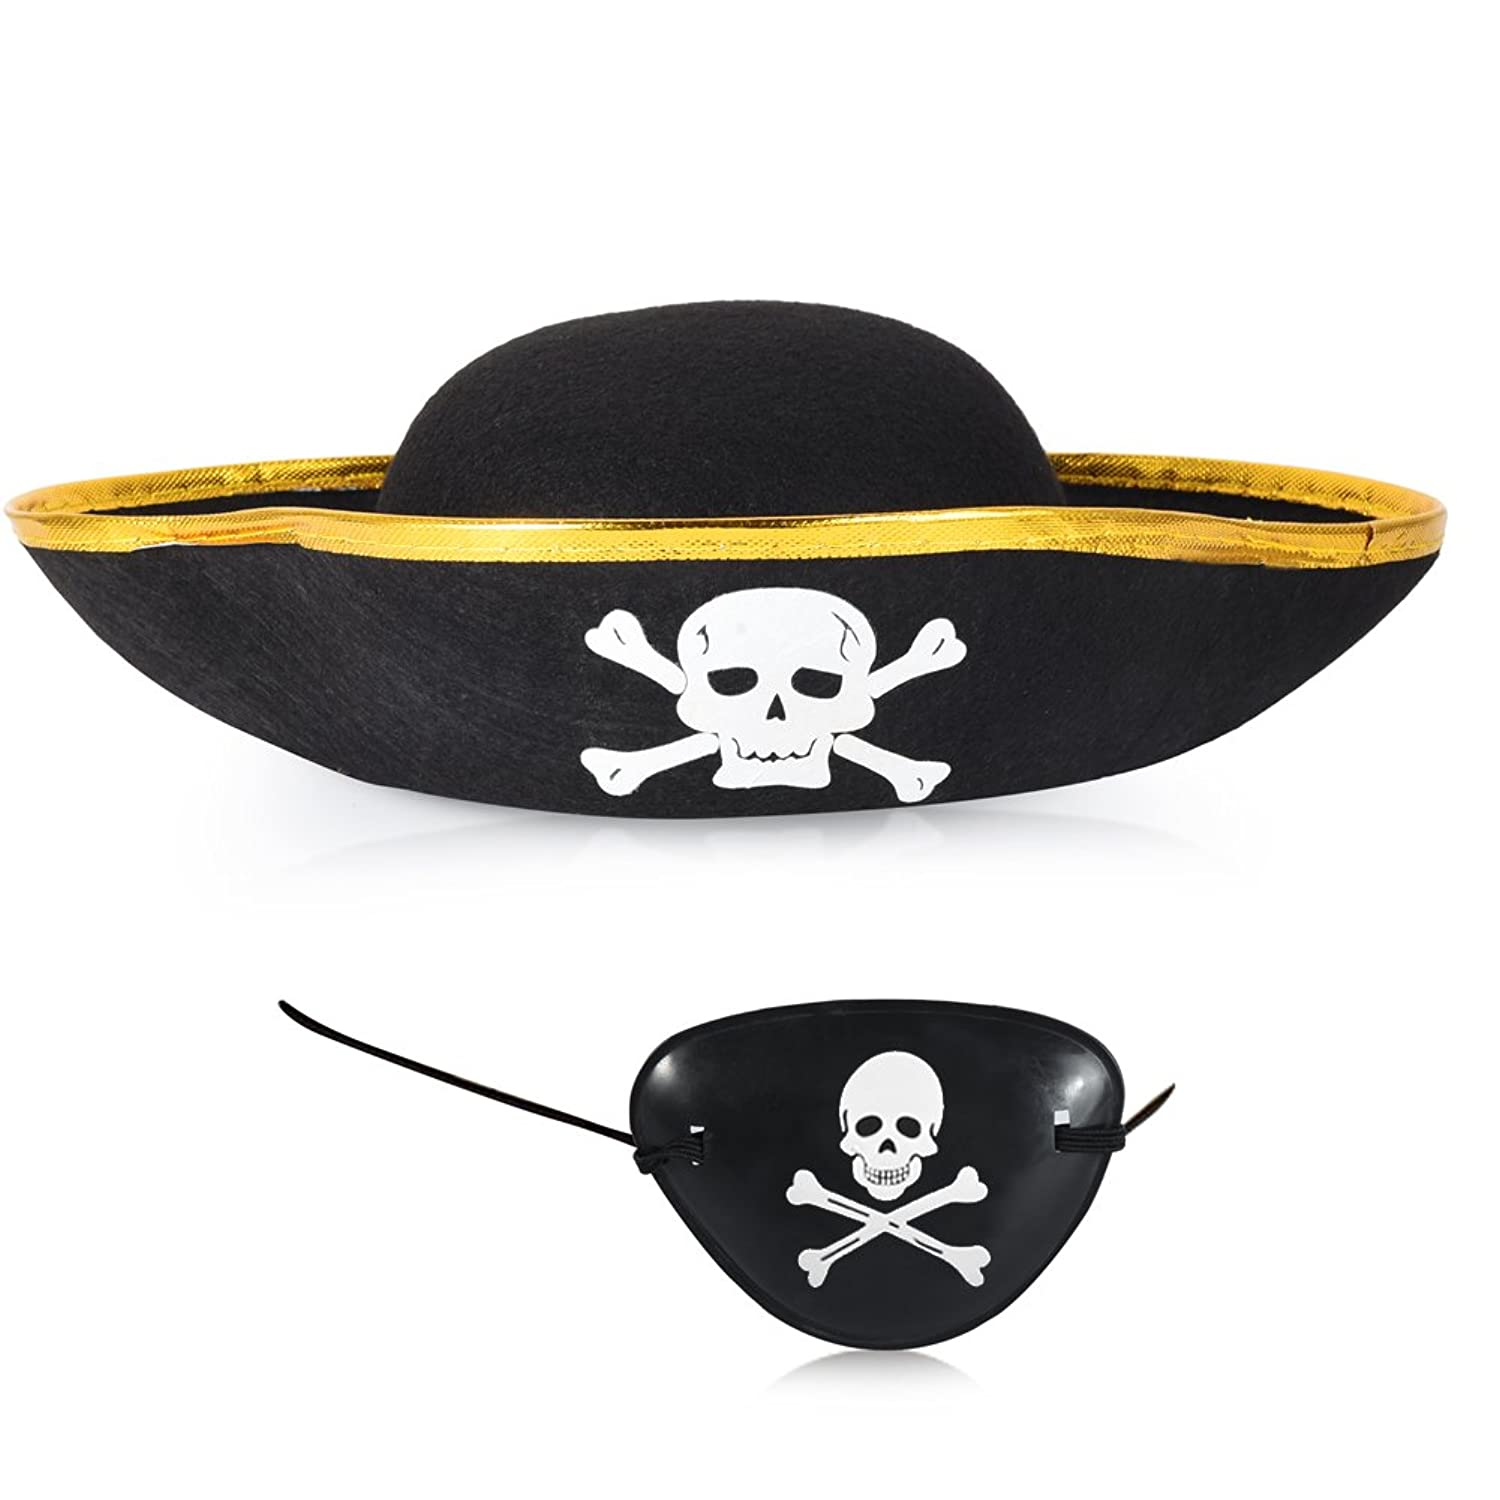 Vbiger Buccaneer Hat And Pirate Captain Eye Patches Halloween Costume Decoration by Vbiger